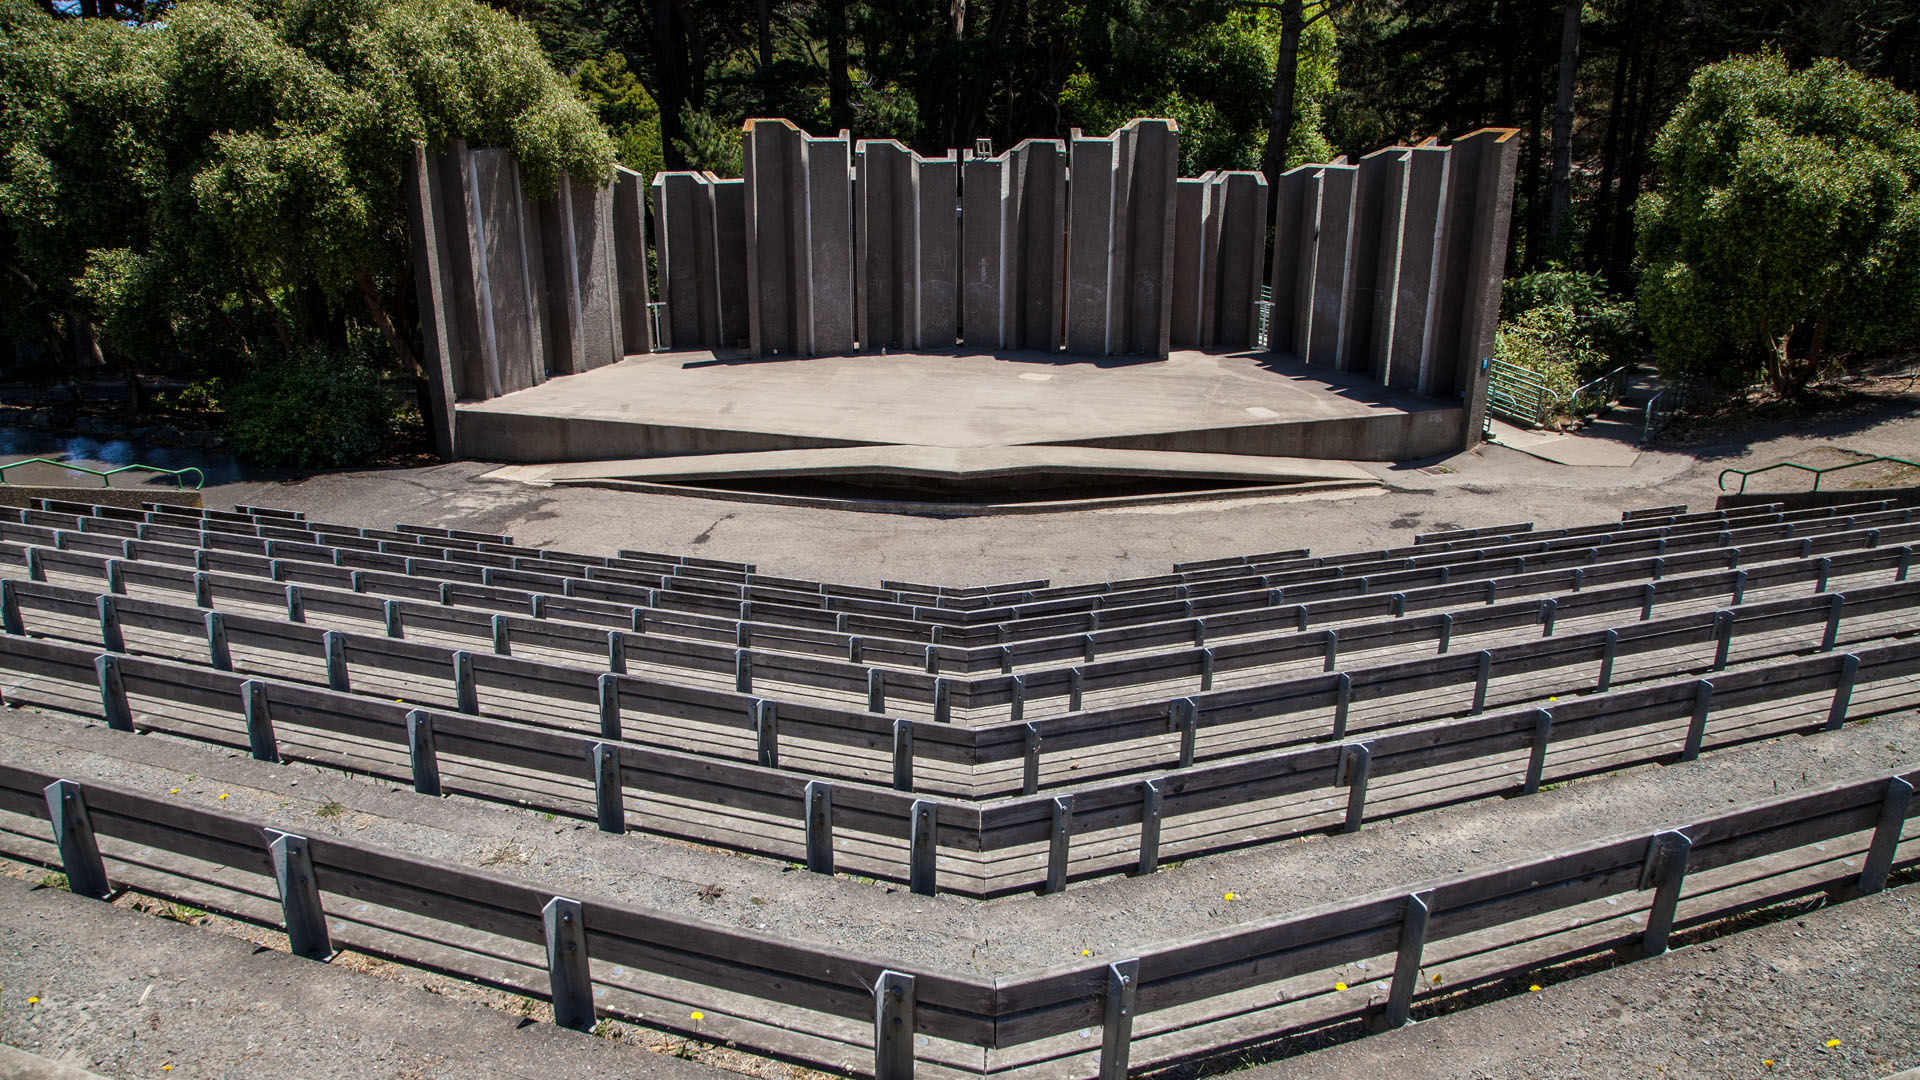 Located within John McLaren Park, the Greek-style Jerry Garcia Amphitheater named after Grateful Dead member Jerry Garcia is known for its outstanding acoustics.